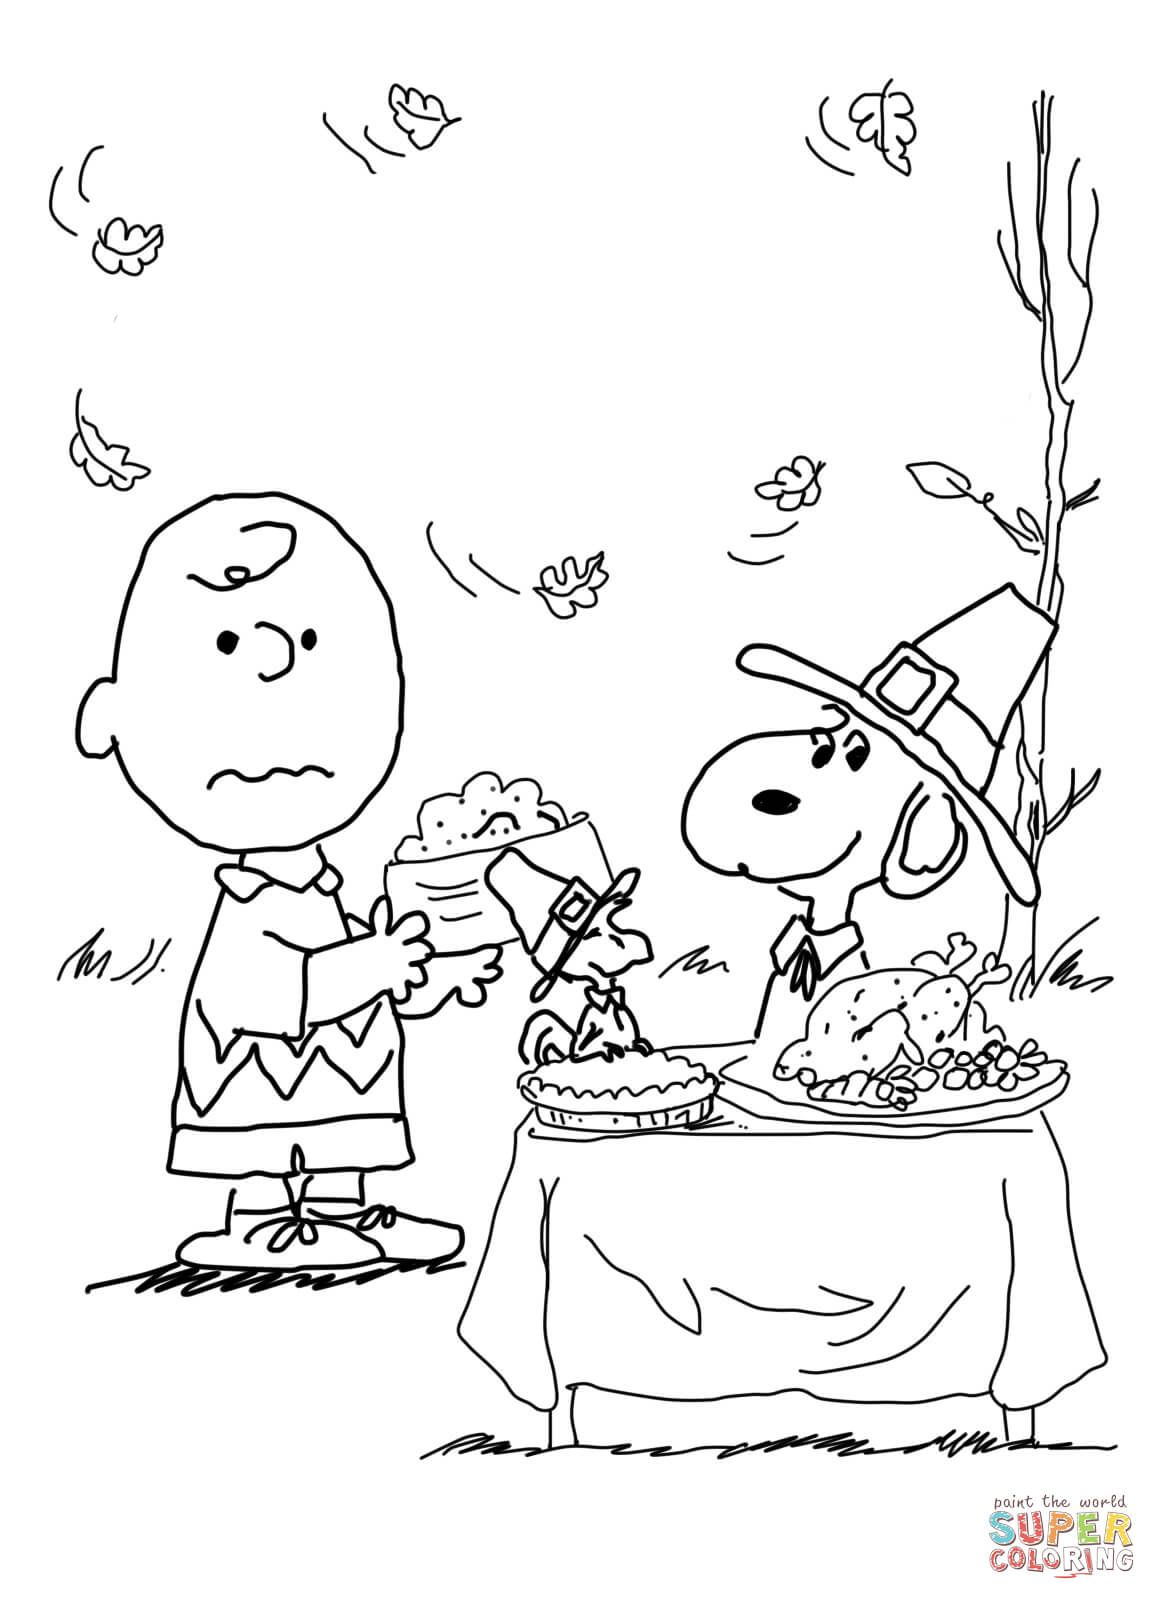 charlie brown thanksgiving coloring page from peanuts category